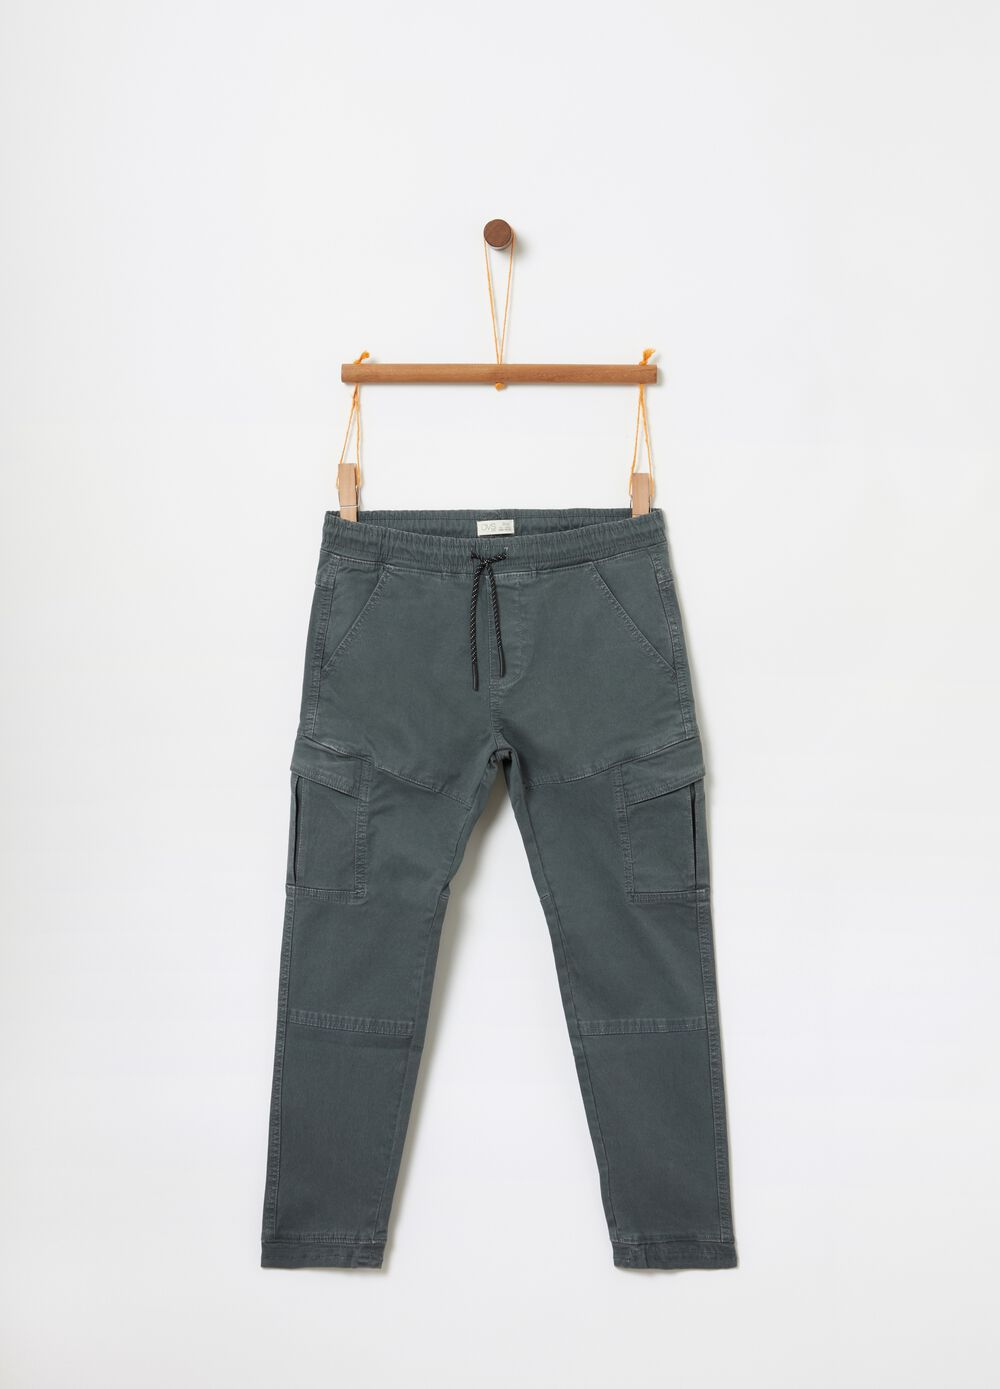 Stretch cotton comfort-fit joggers with pockets